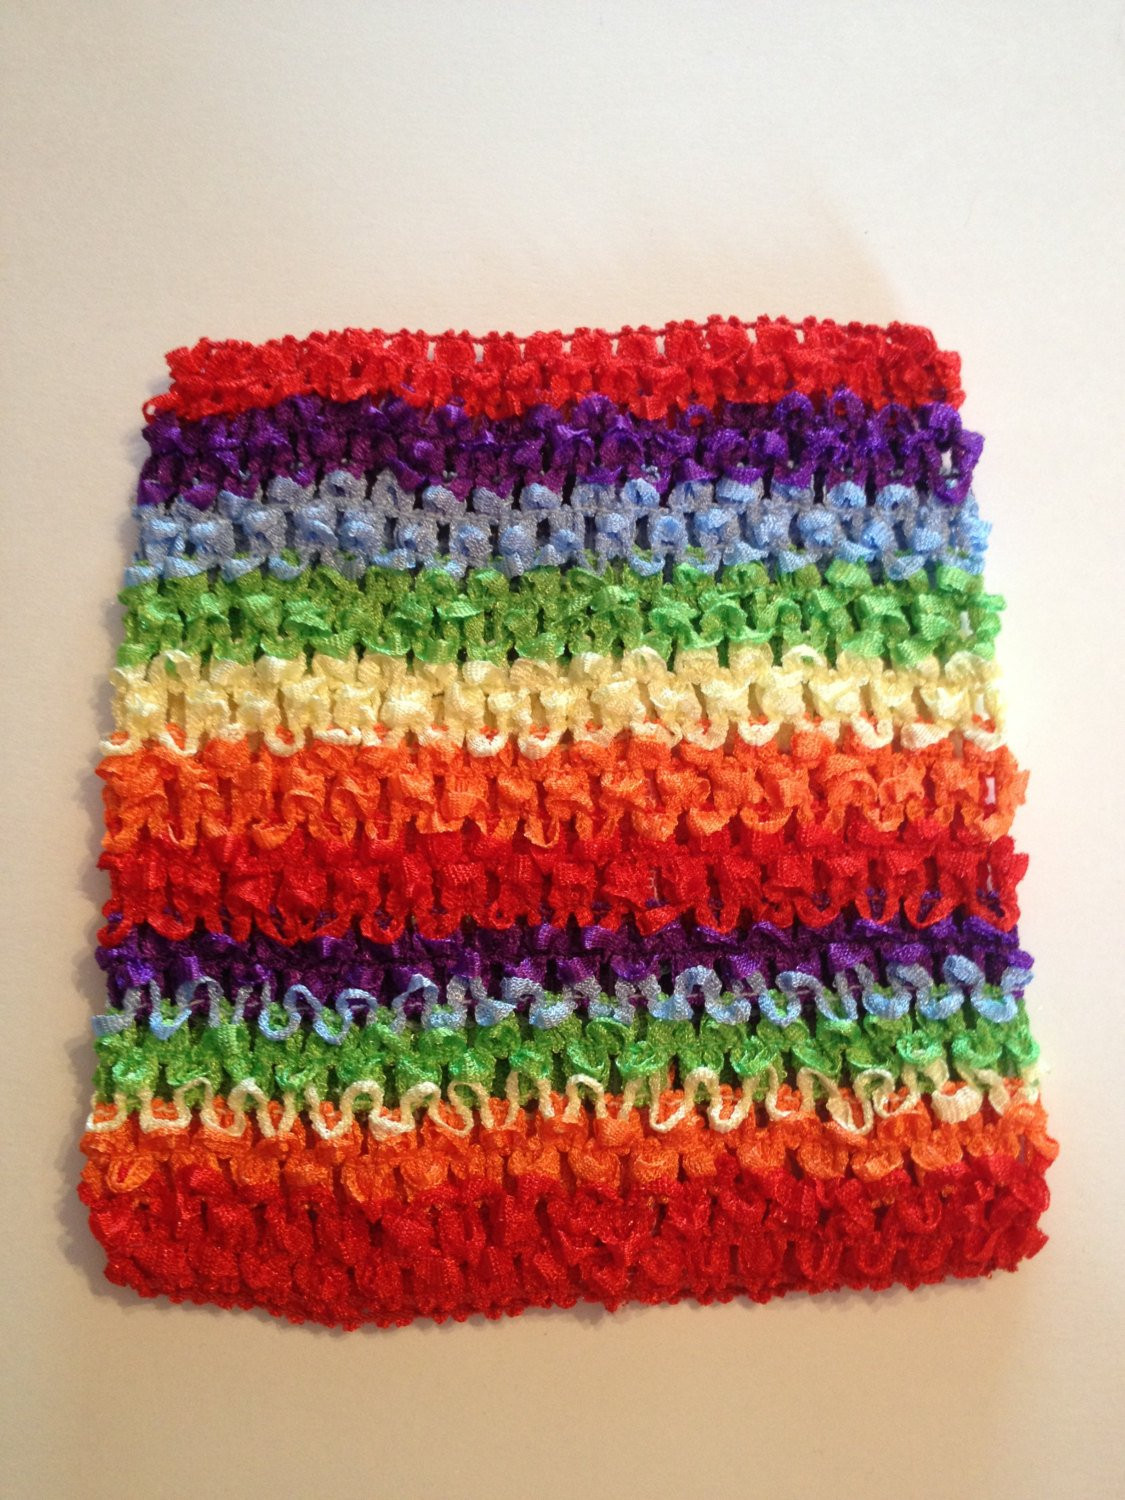 Beautiful Rainbow 6 5 Crochet Tube top for Tutu Dresses Crochet tops for Tutus Of Adorable 45 Models Crochet tops for Tutus